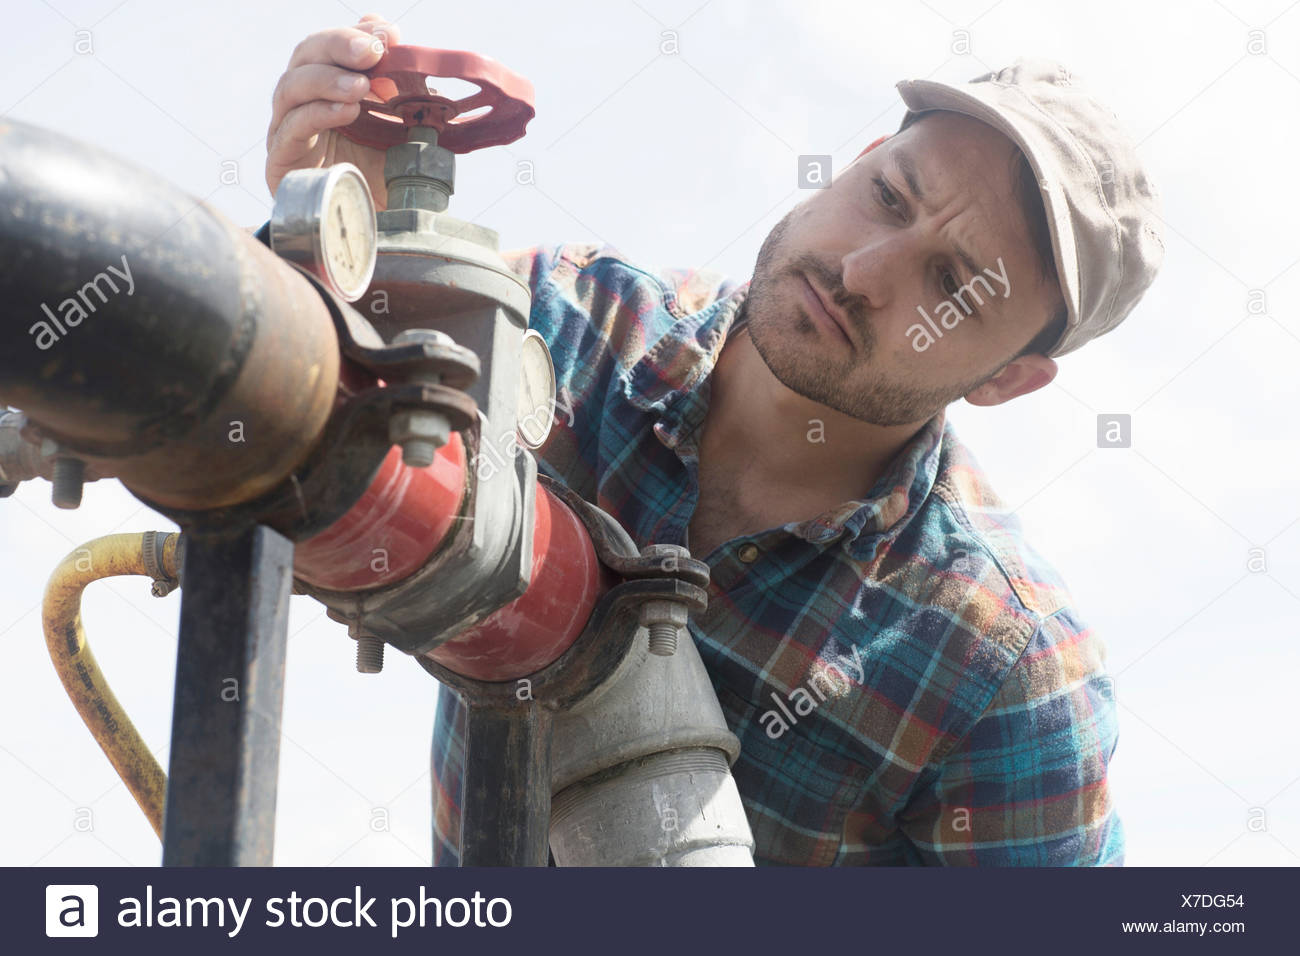 Man opening valve on industrial piping - Stock Image